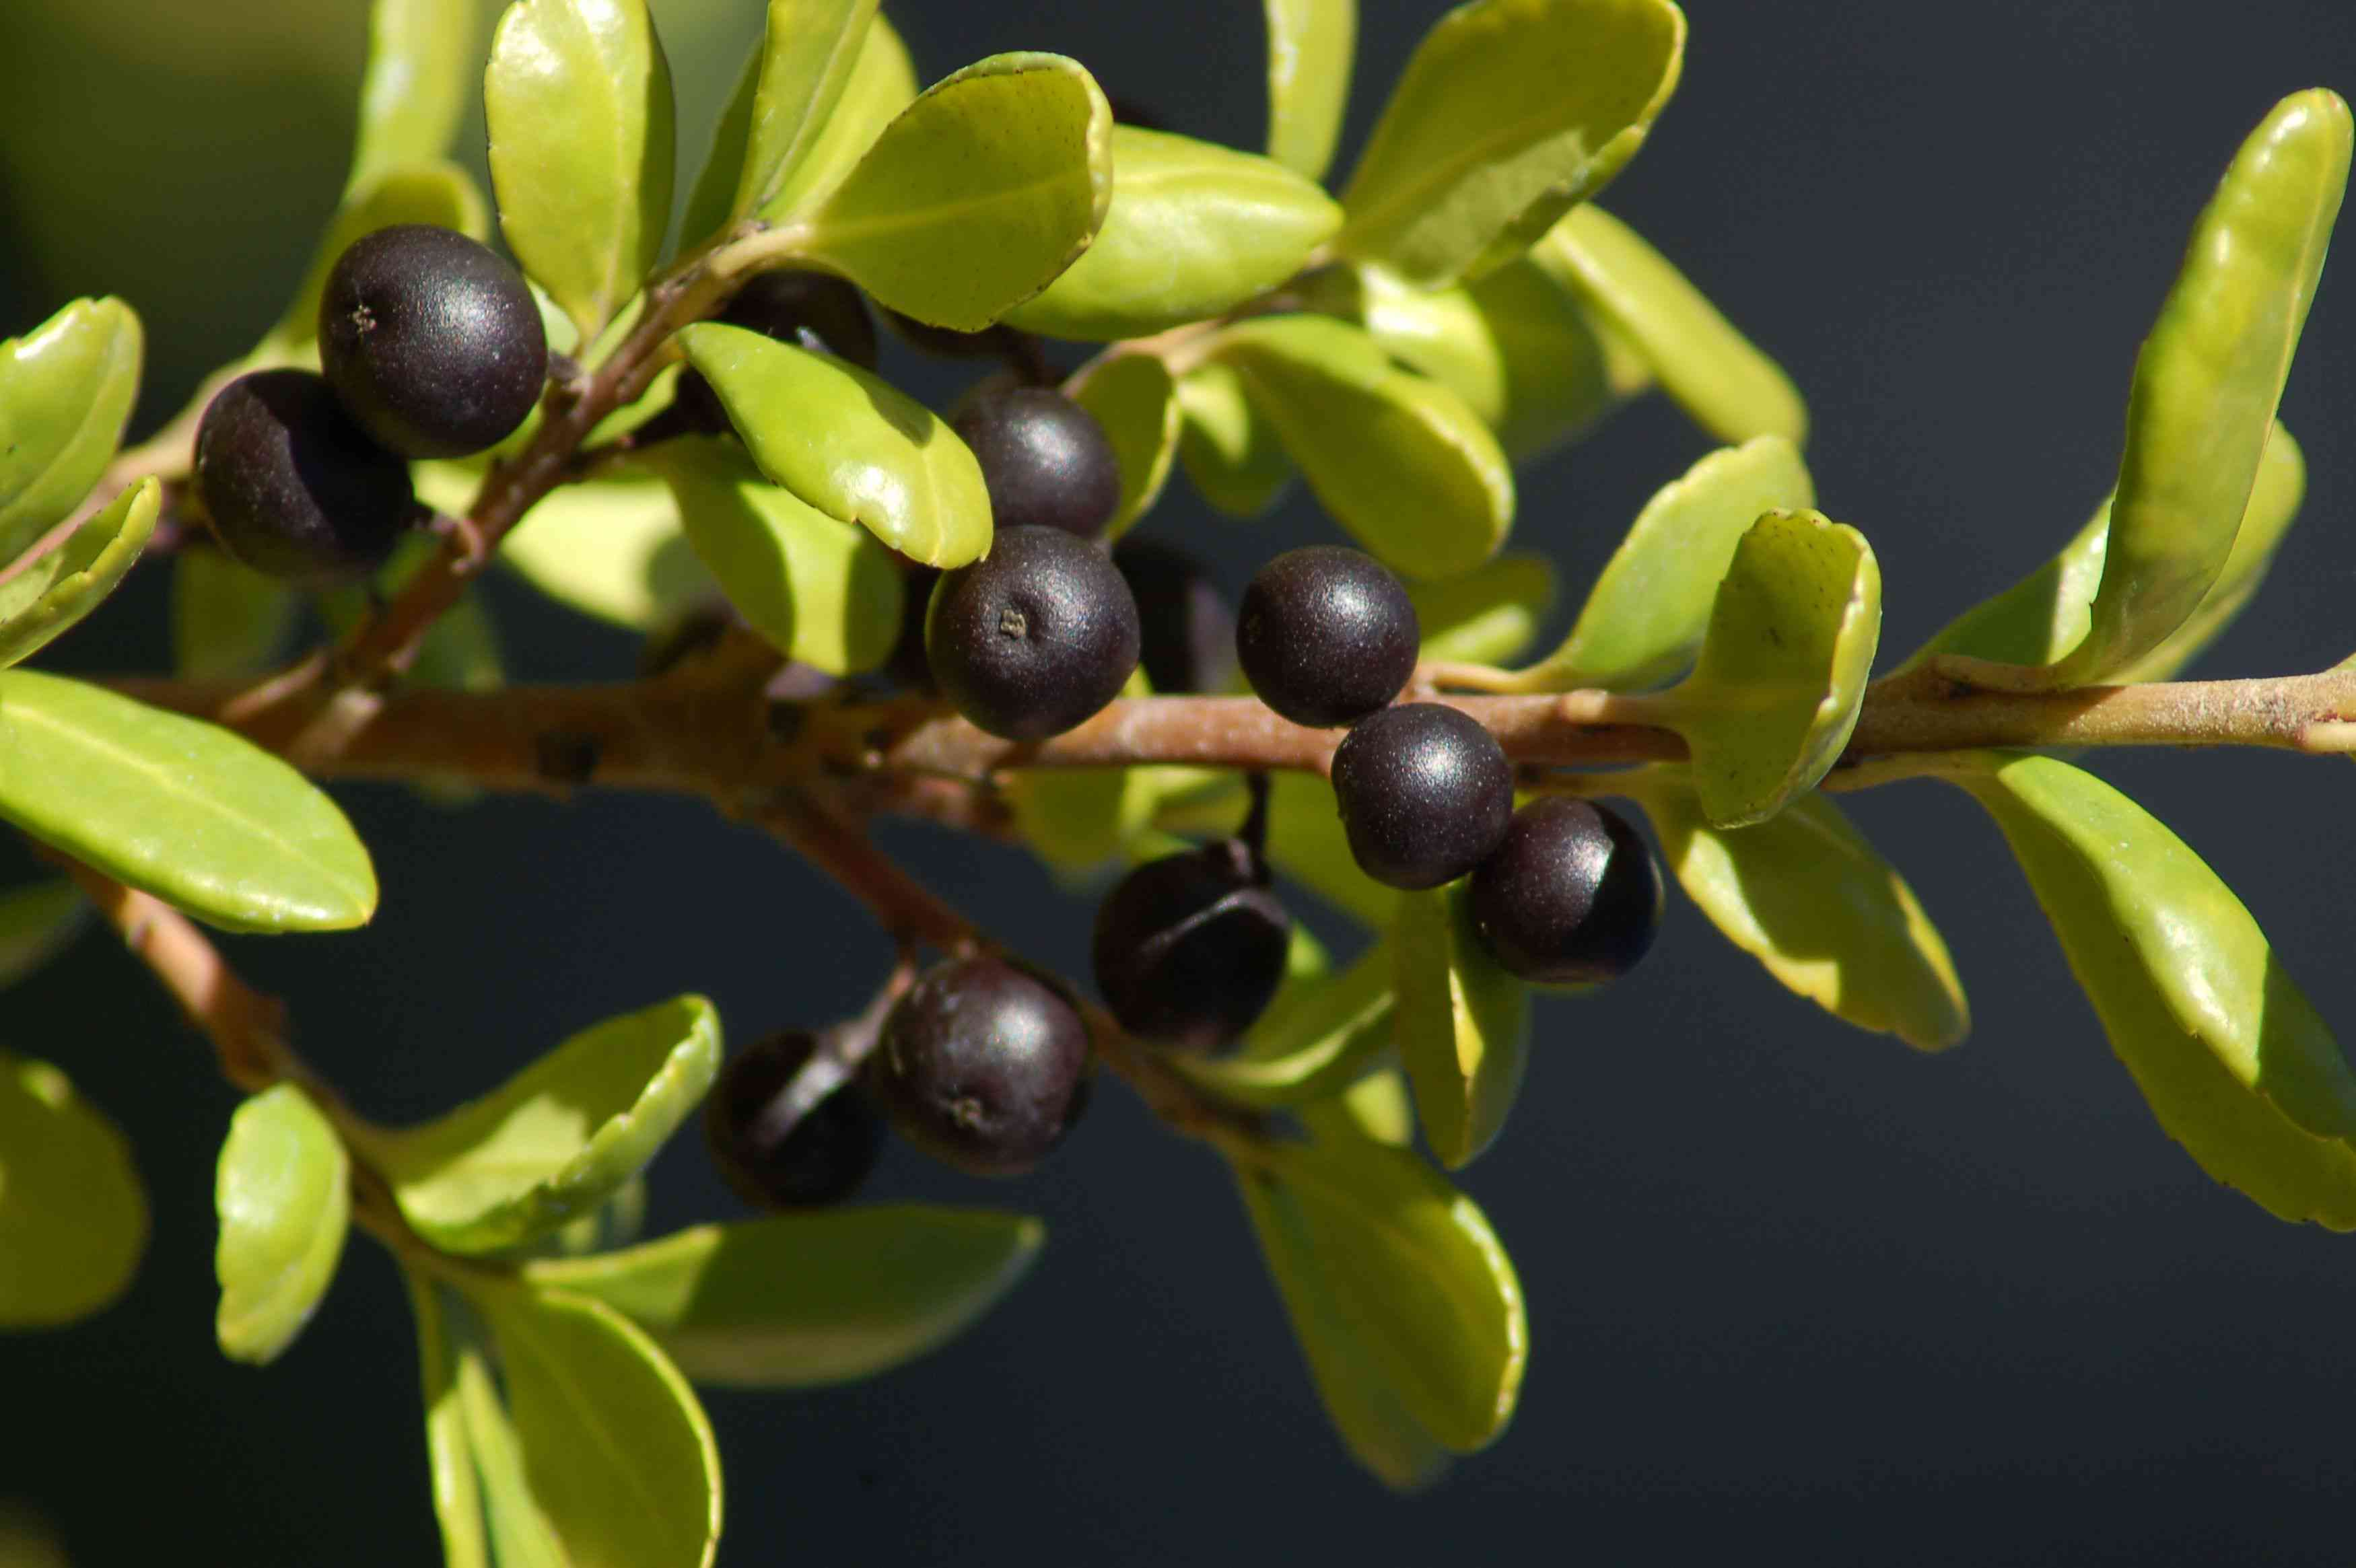 Japanese holly branch with black berries and small light green leaves closeup